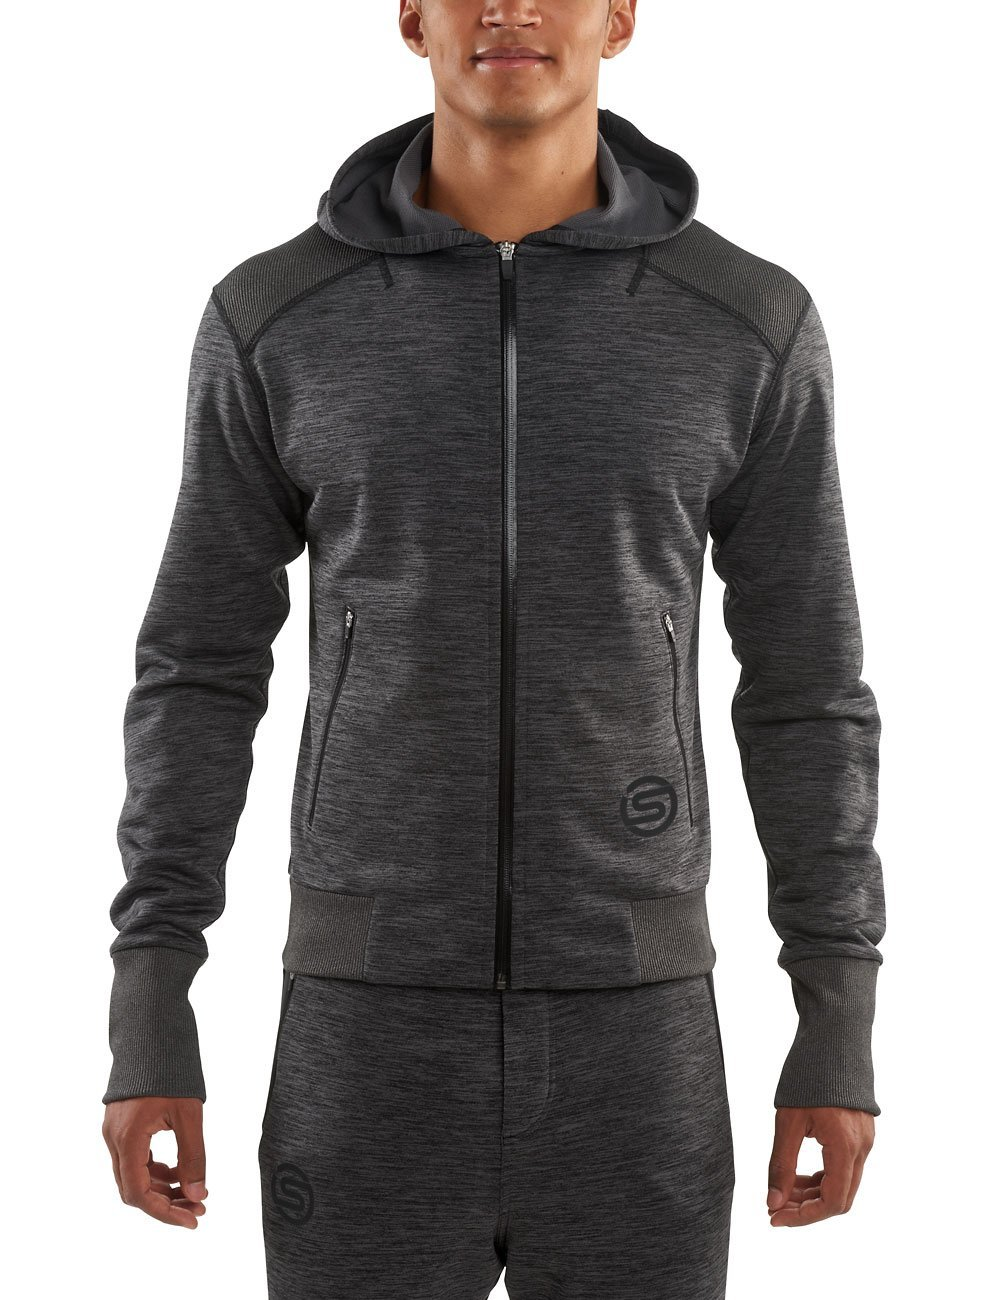 Cheap Tech Fleece Hoodie, find Tech Fleece Hoodie deals on